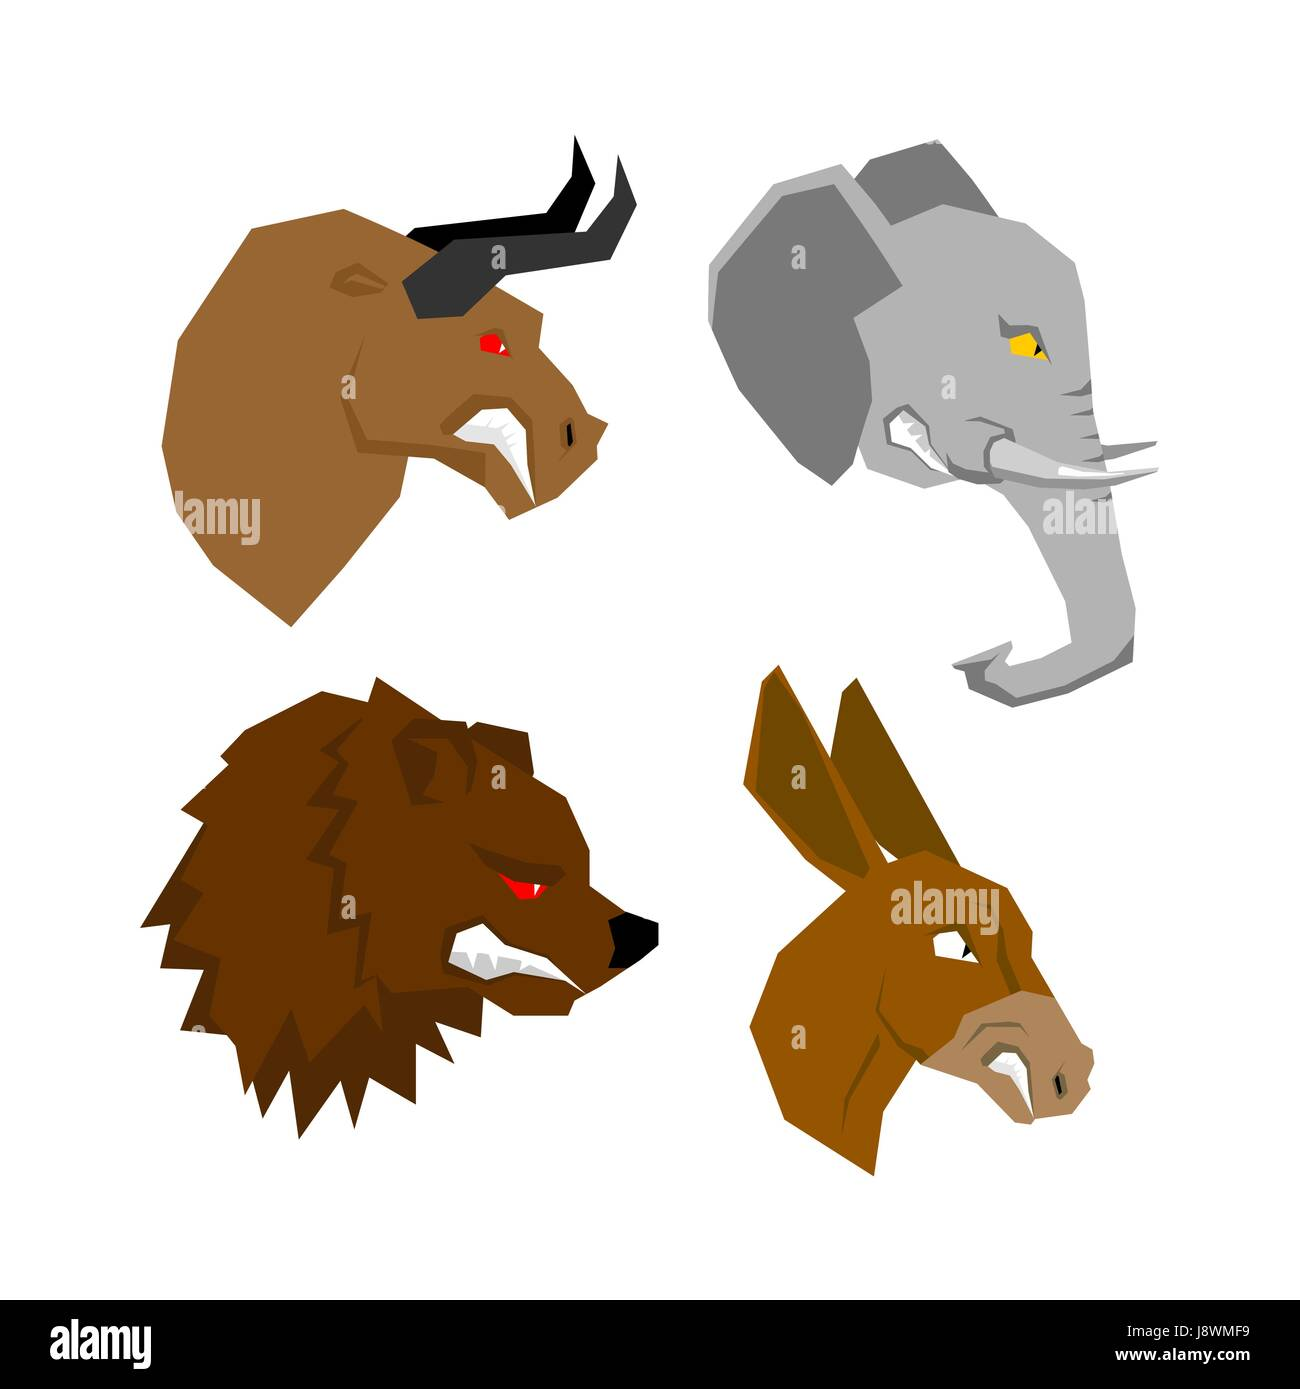 Angry animal set. Aggressive bull with red eyes. Scary elephant with tusks. Horrible bear with grin. Ferocious donkey - Stock Image